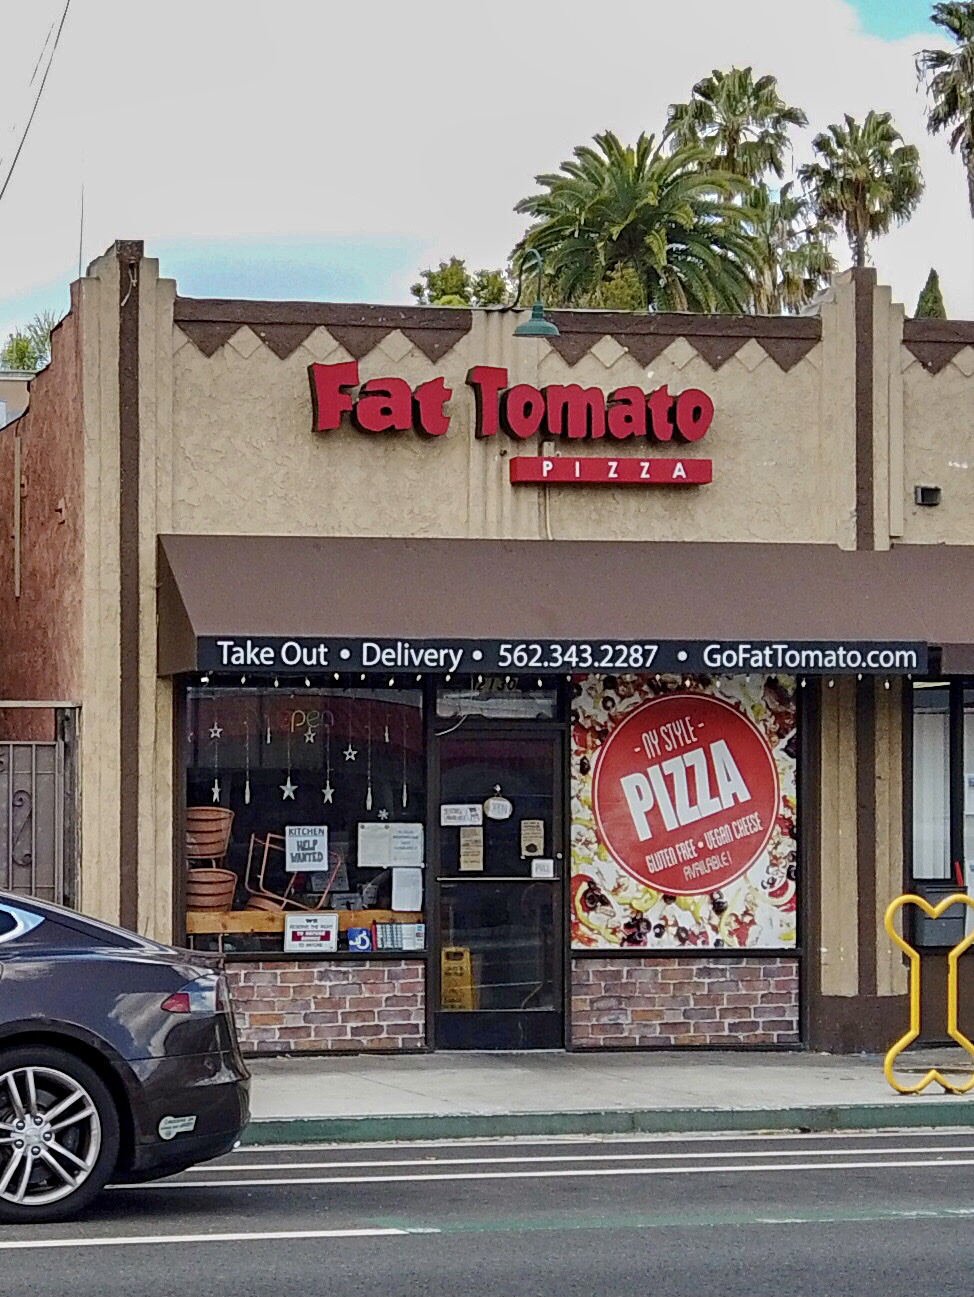 Fat Tomato Pizza - meal delivery  | Photo 5 of 10 | Address: 2130 E Broadway, Long Beach, CA 90803, USA | Phone: (562) 343-2287